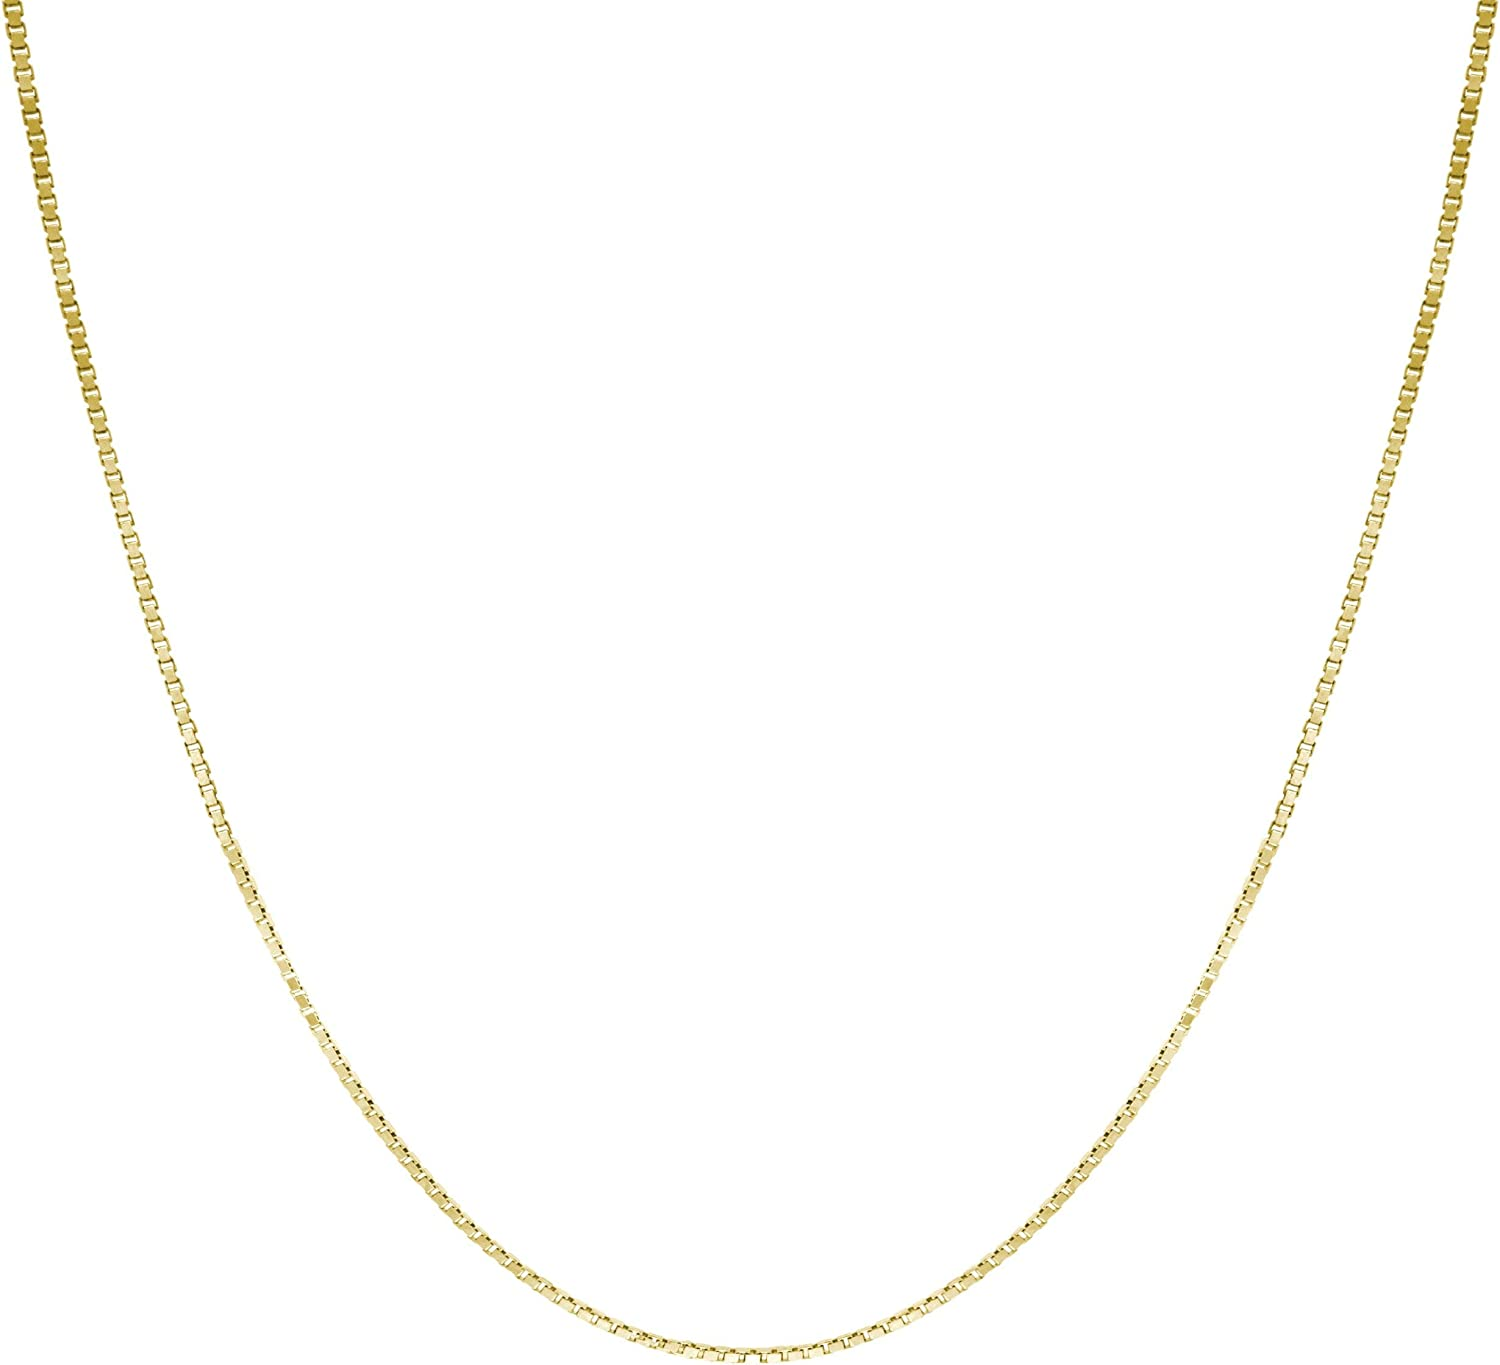 Honolulu Jewelry Company 14K Solid Gold 0.7mm Box Chain Necklace, 16